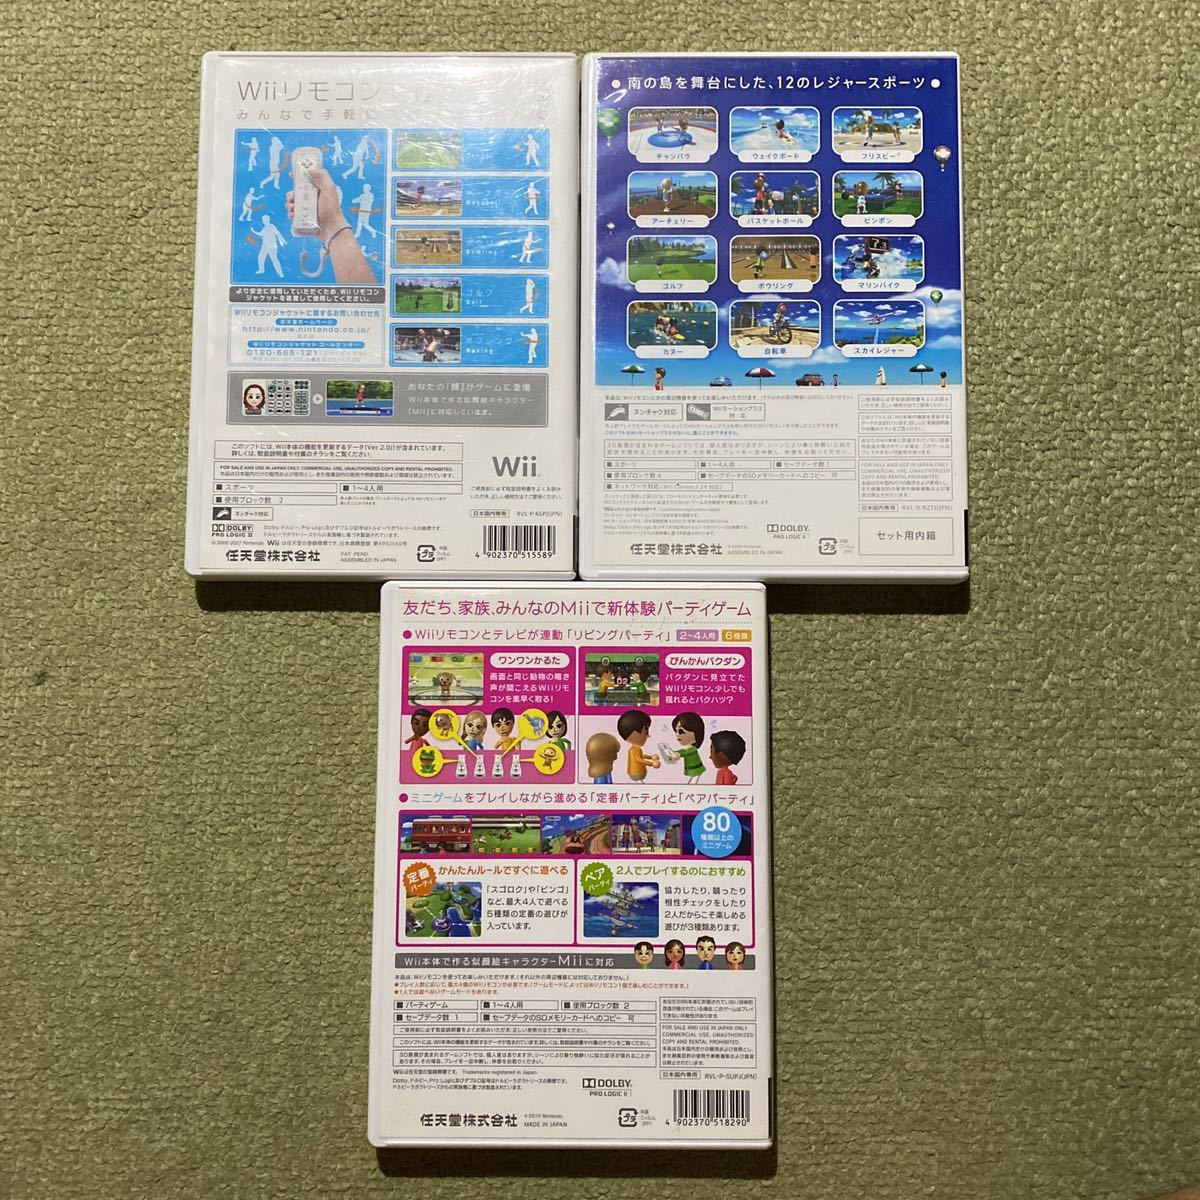 Wii Wii Sports Wii party 2本セット 即決